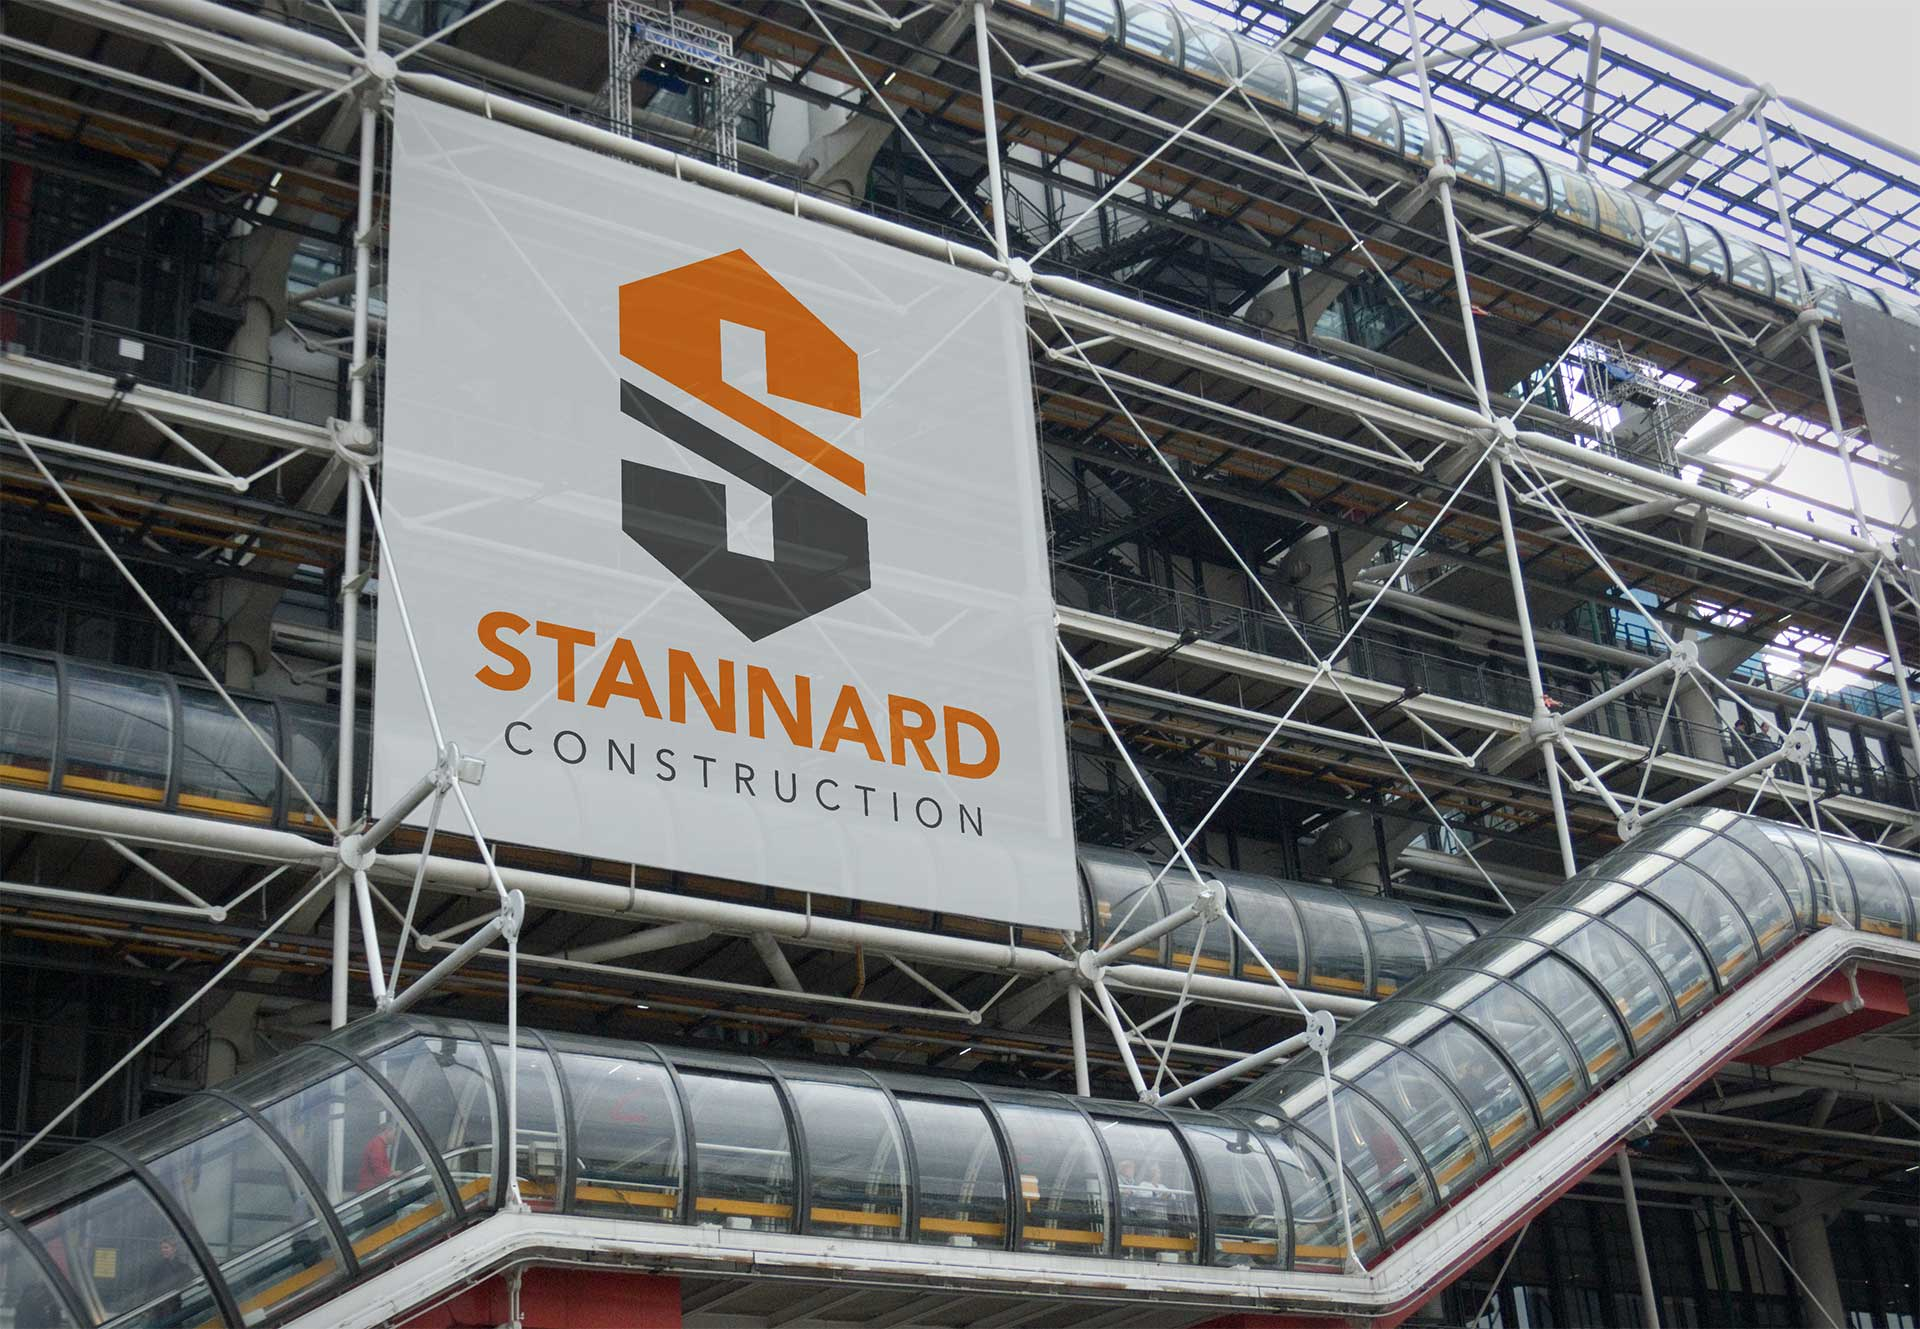 Stannard Construction logo on building site sign